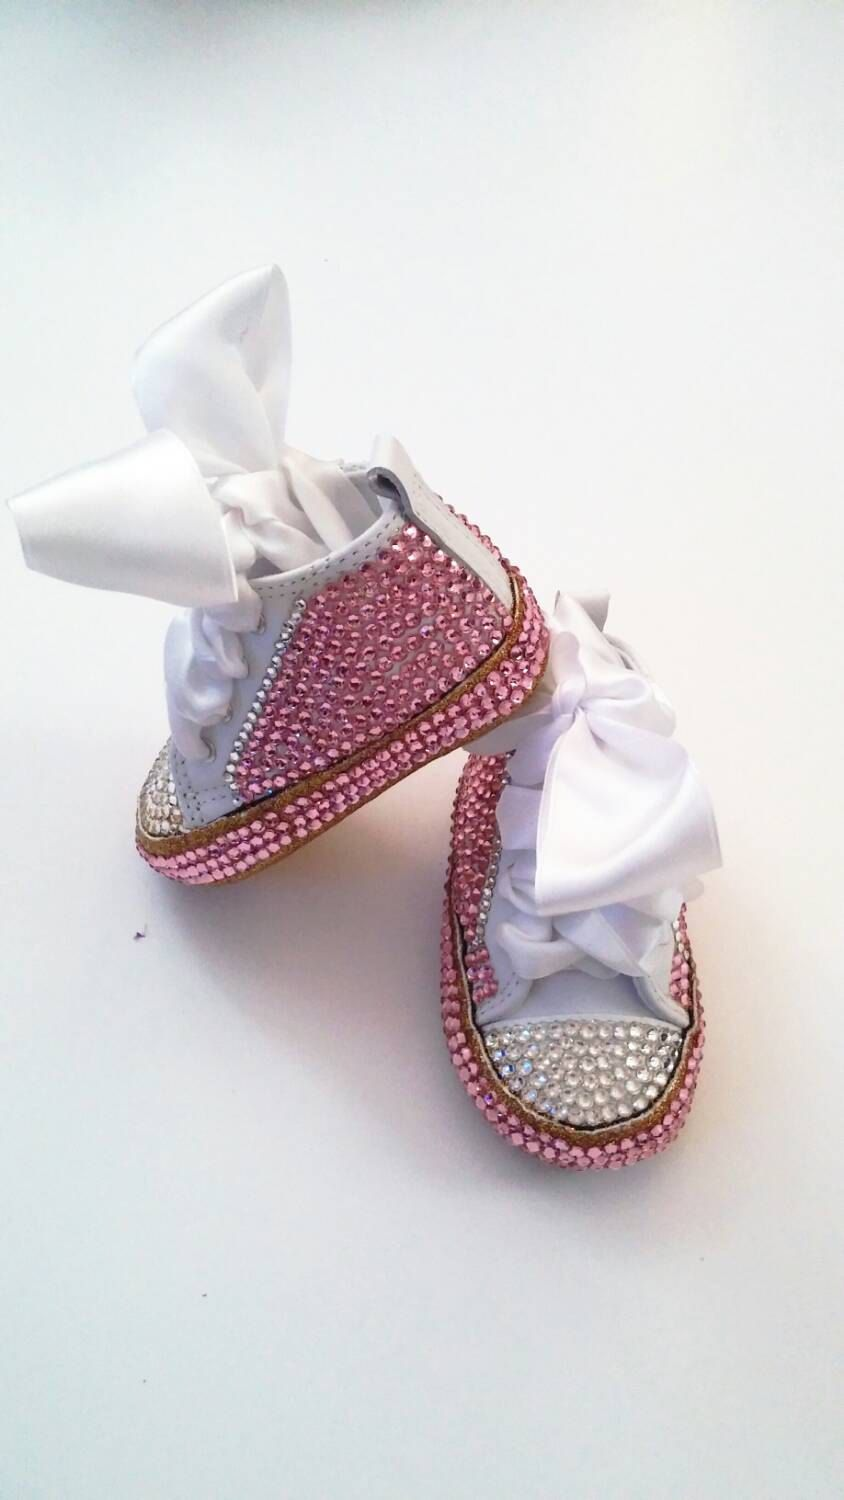 cb3731d8dee7 Pink and gold baby shoes - glitter soles - custom baby converse - Bling baby  shoes - baby birthday shoes - Swarovski Crystal Baby shoes by AllureDesignz  on ...